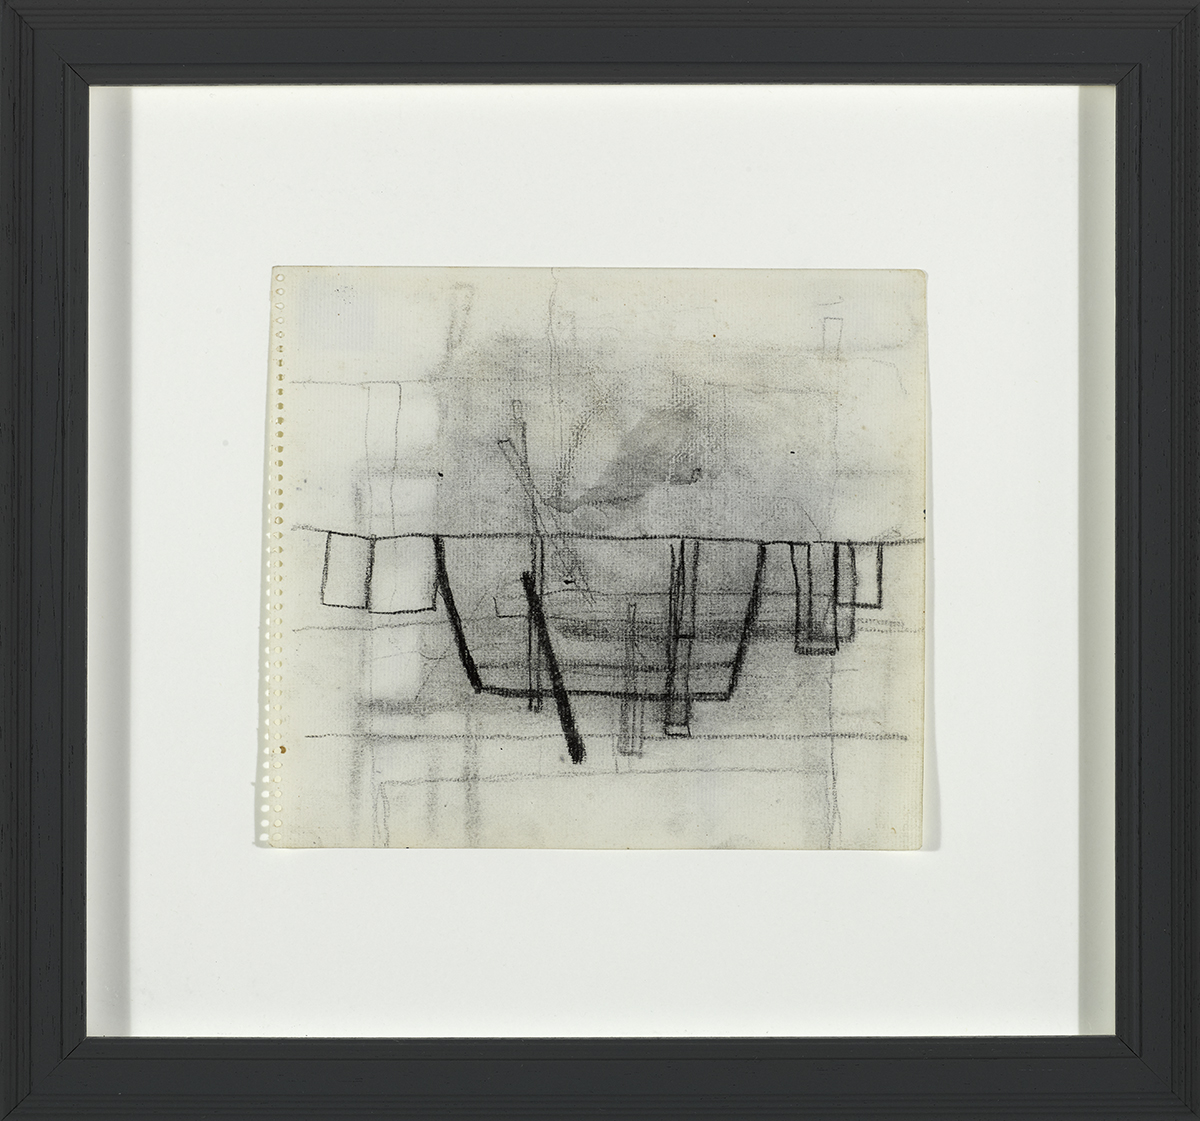 Lot 59 - William Scott CBE RA (1913-1989)STILL LIFE WITH PAN AND GLASSES, c. 1953 charcoal and wash on